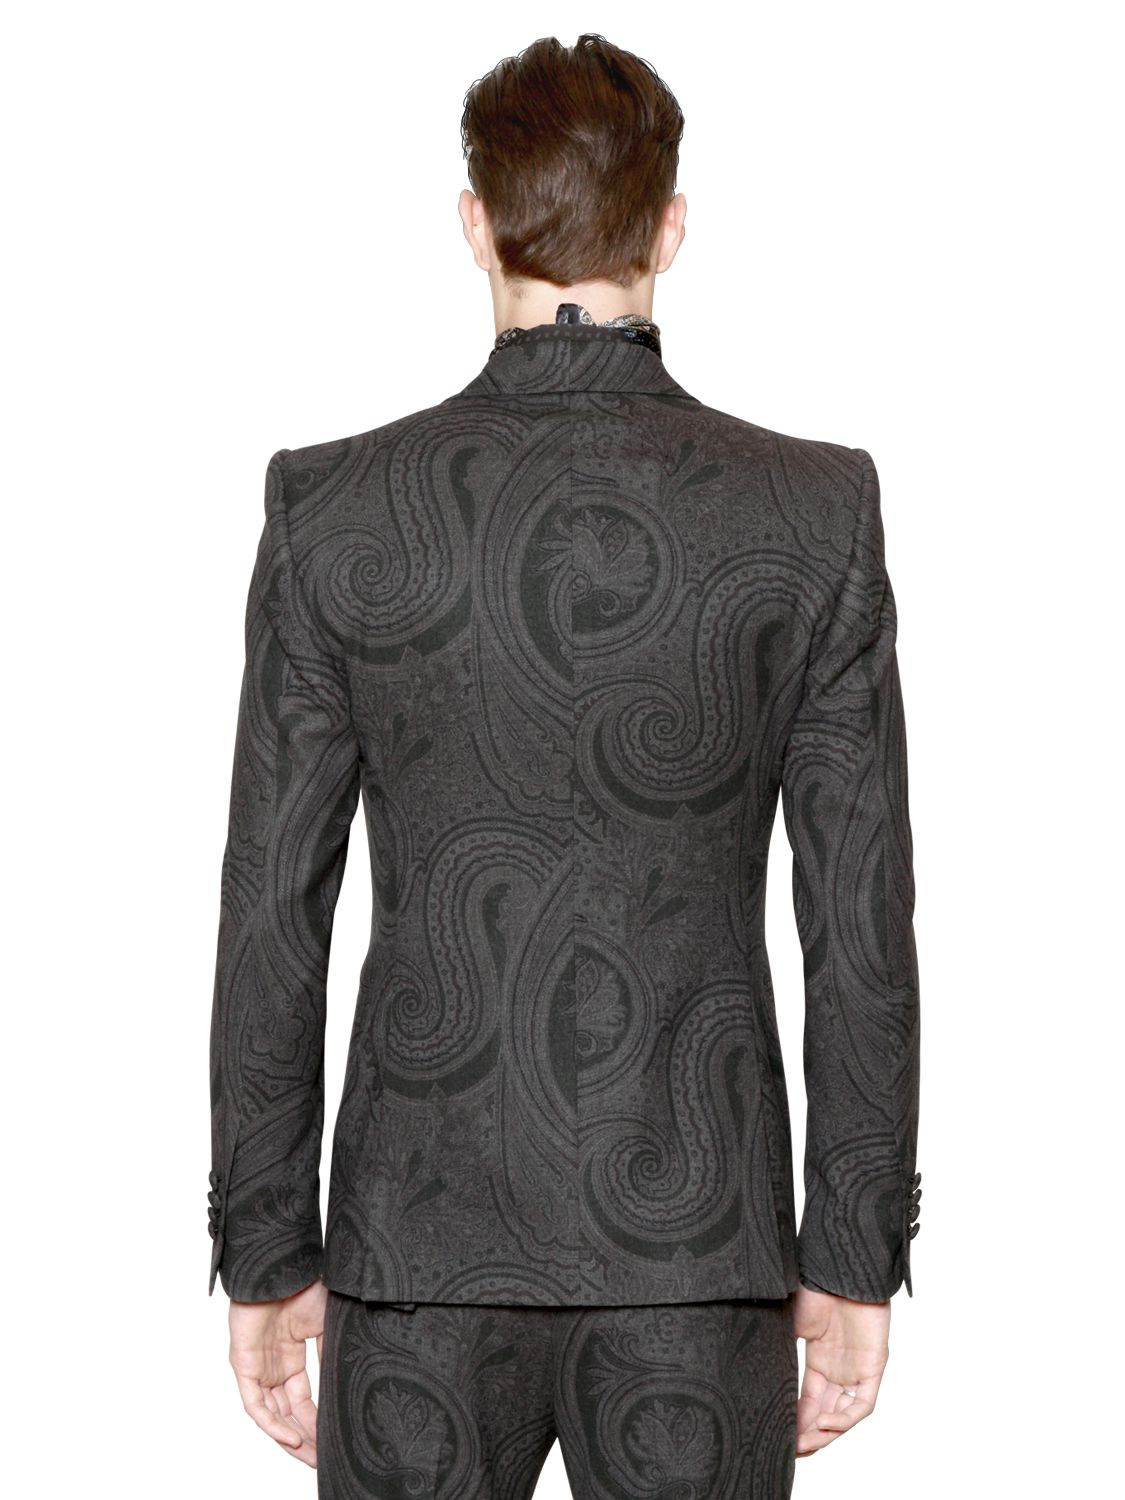 Etro Paisley Stretch Wool Jacquard Jacket In Gray For Men